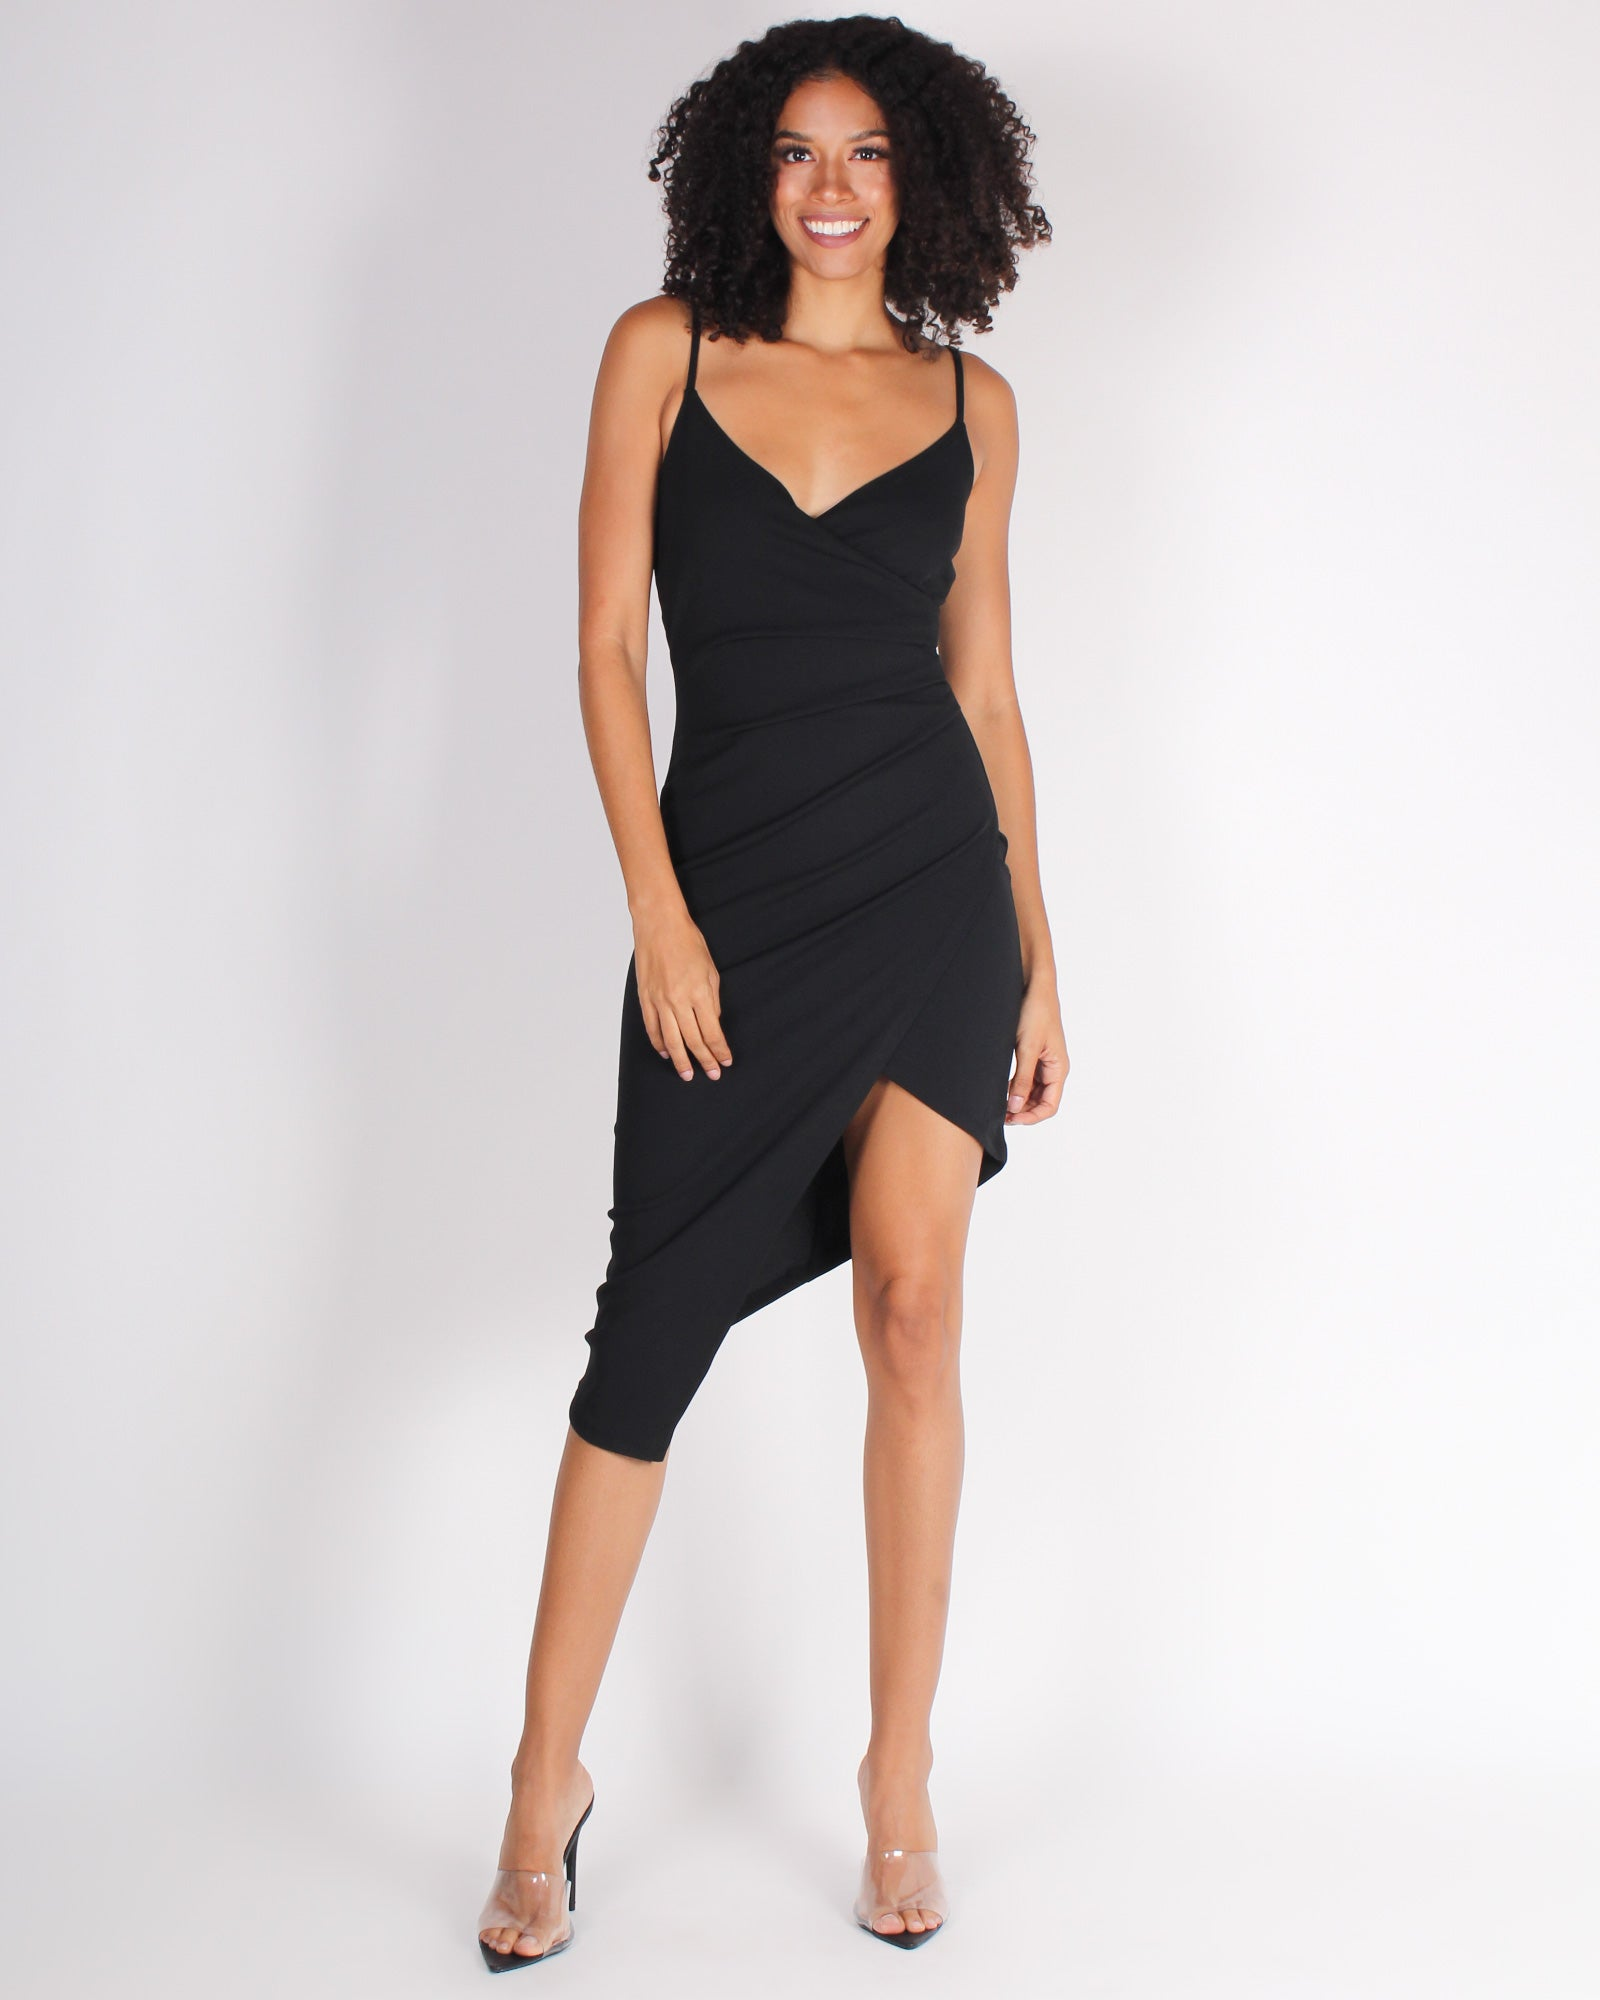 Fashion Q Shop Q Tonight We Party Bodycon Dress (Black) DX7331